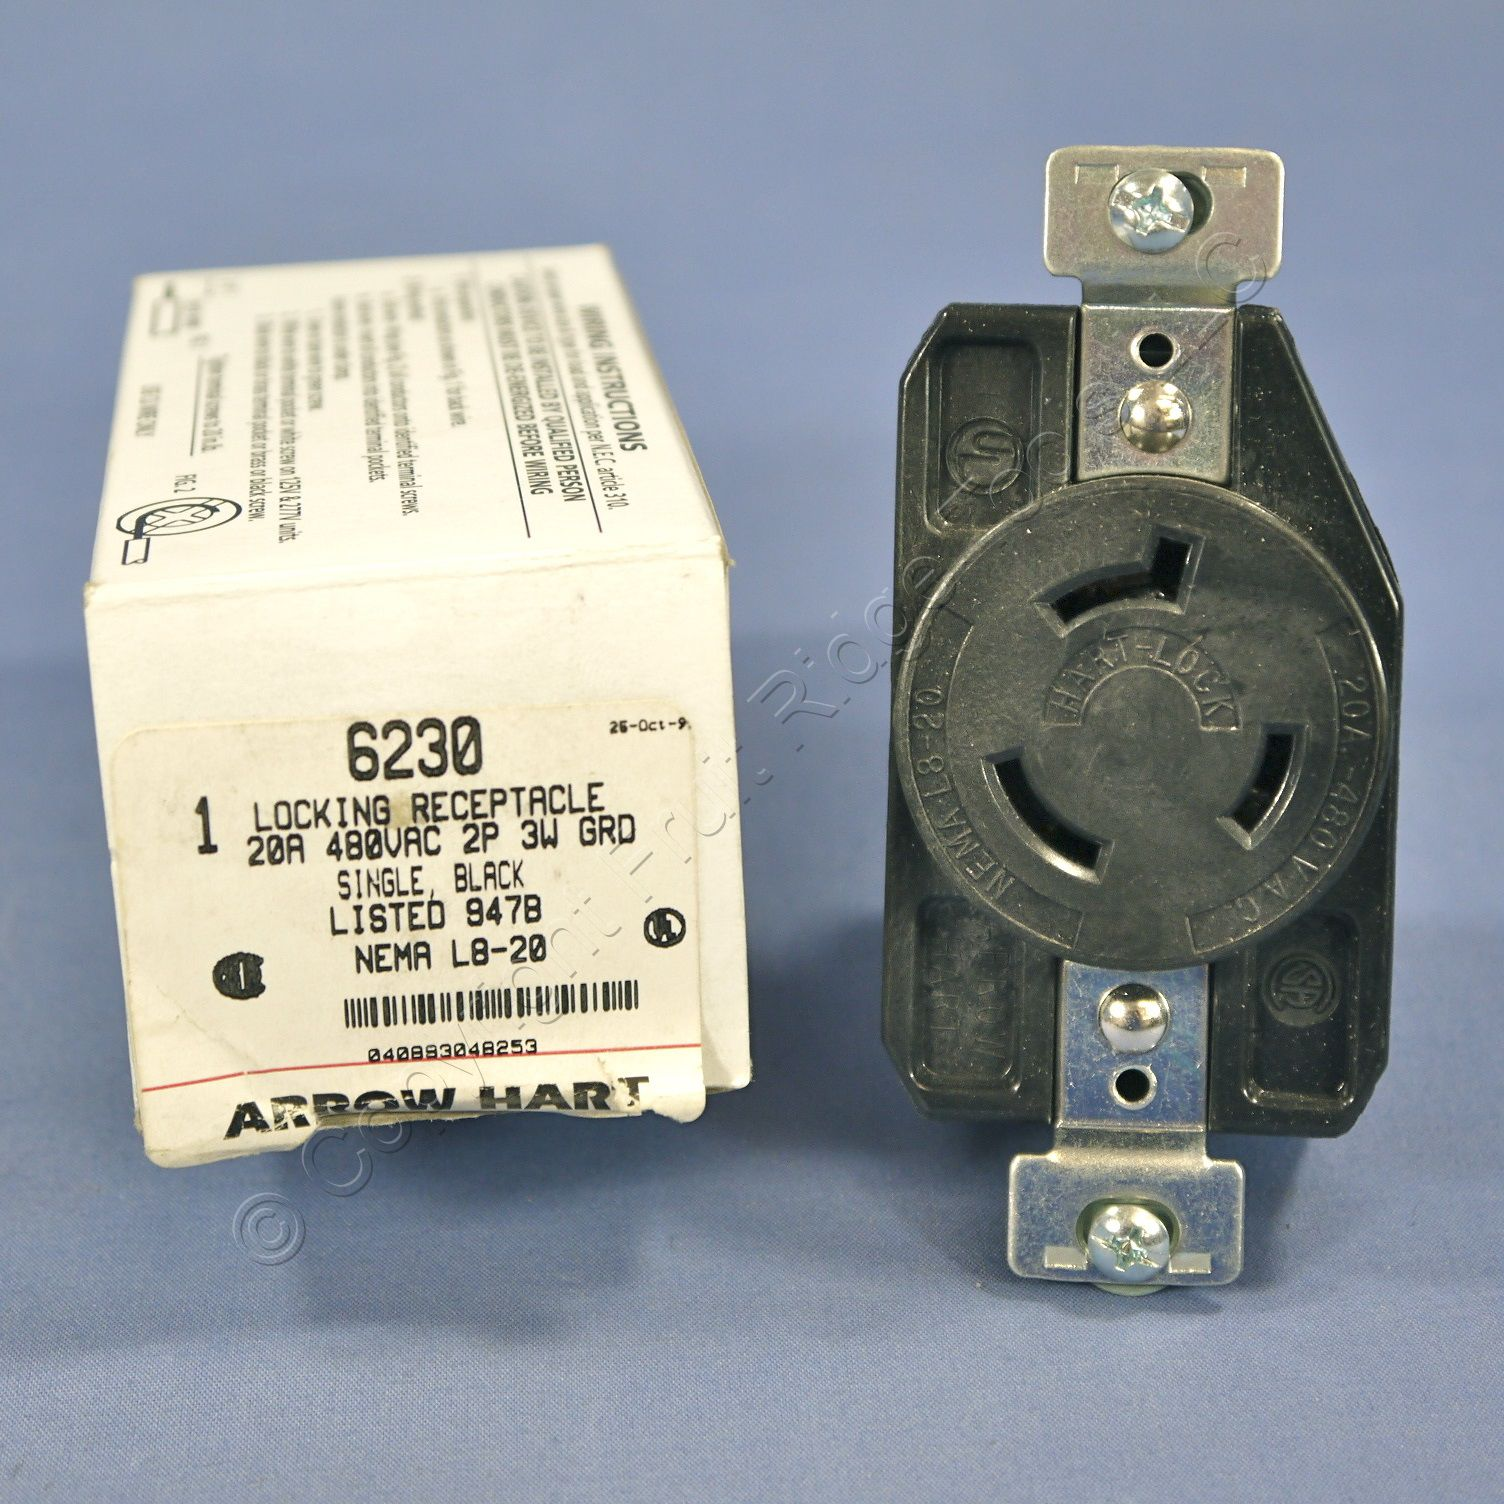 Arrow Outlets Giftsforsubs Hart 5709n Power Receptacle 50a 250v Nema 650 2pole 3wire Ebay Twist Turn